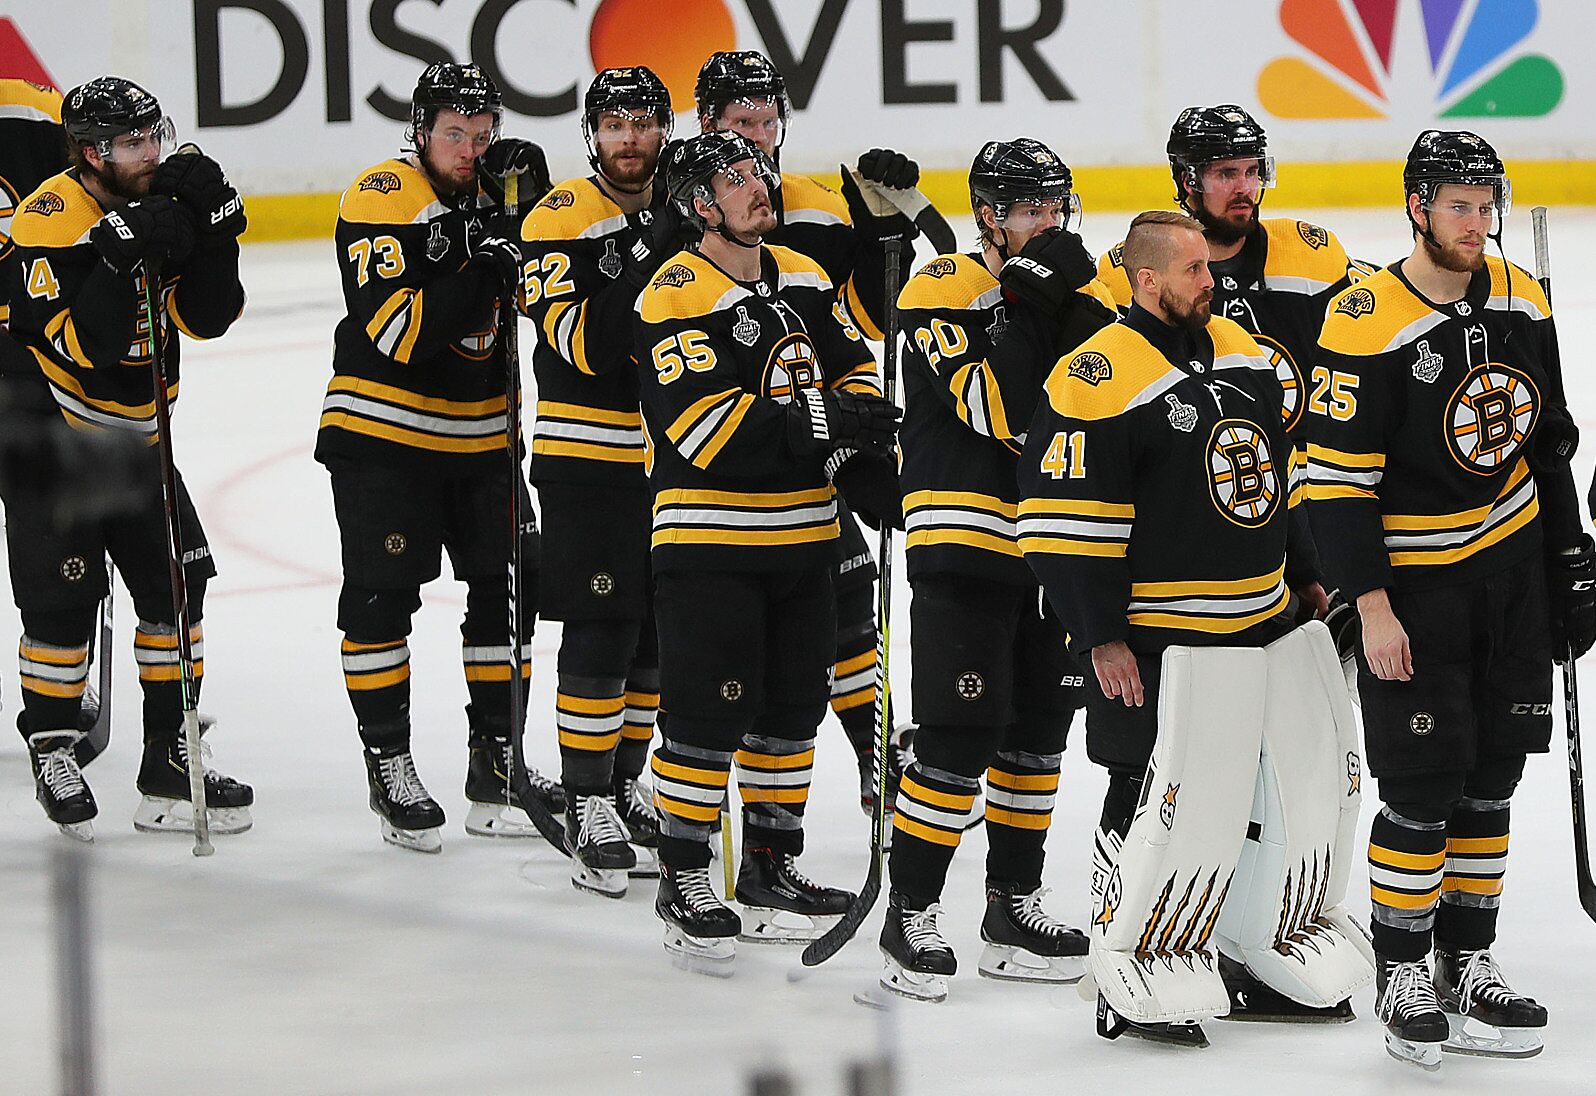 The Boston Bruins blew the chance to become a dynasty